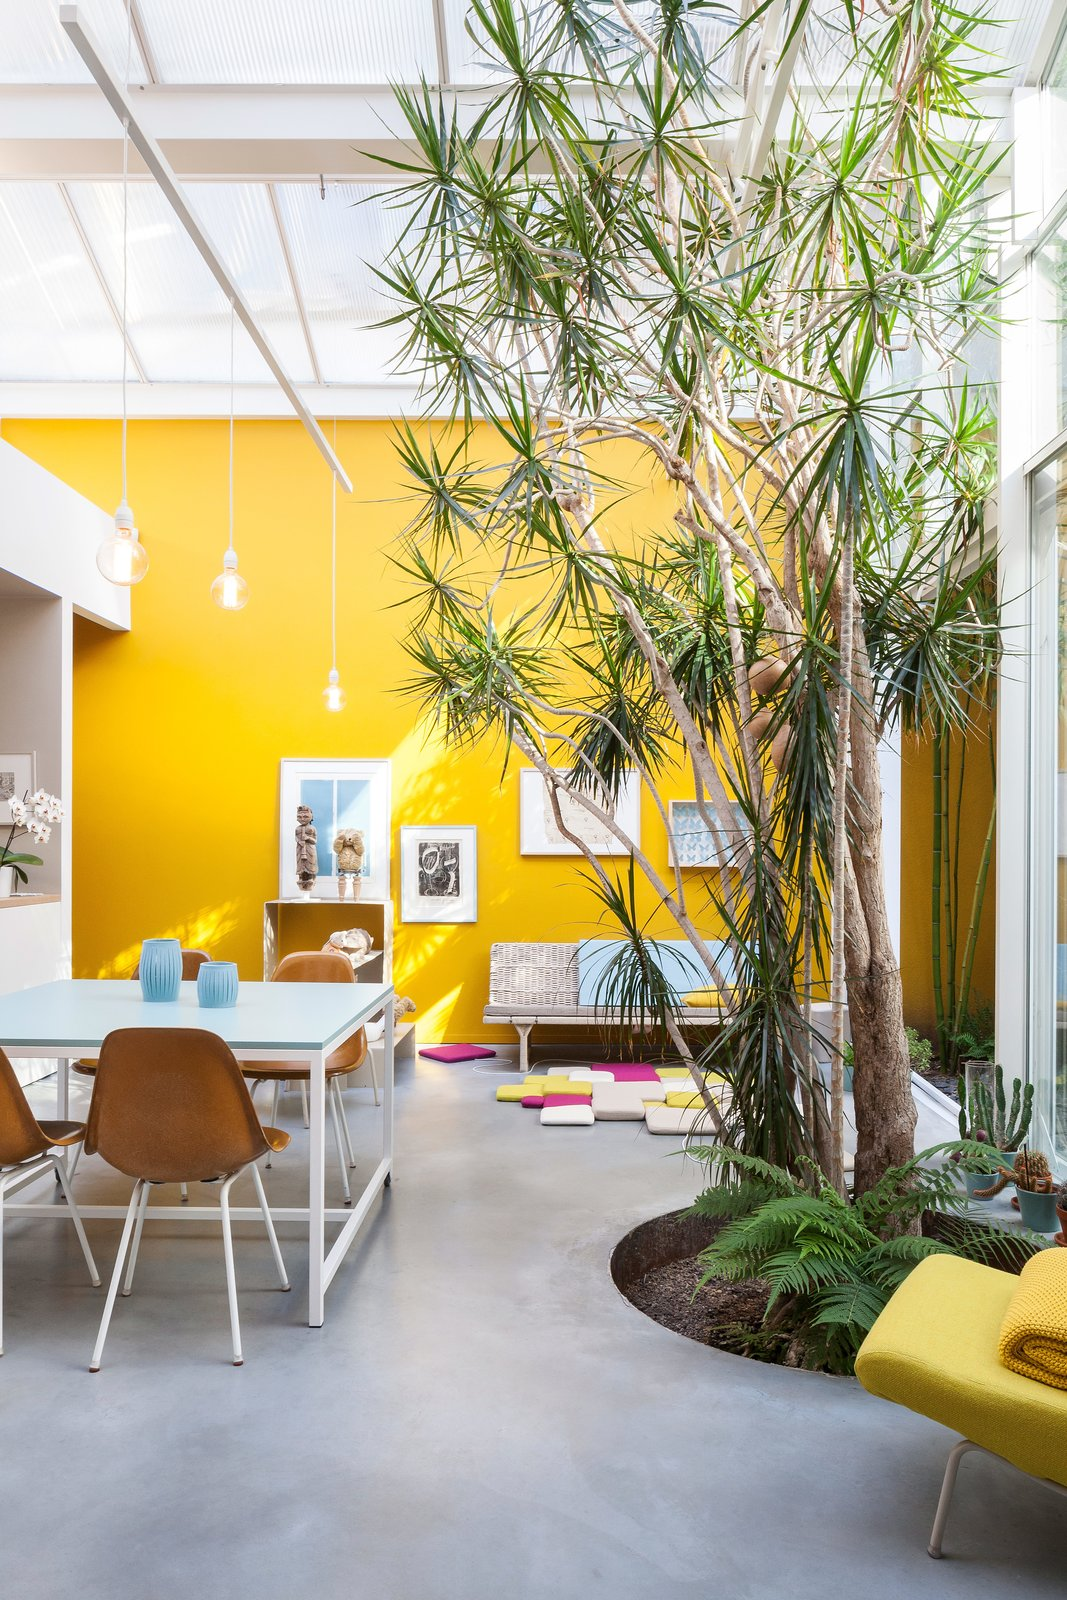 25 Bold Ways to Decorate with Yellow - Dwell